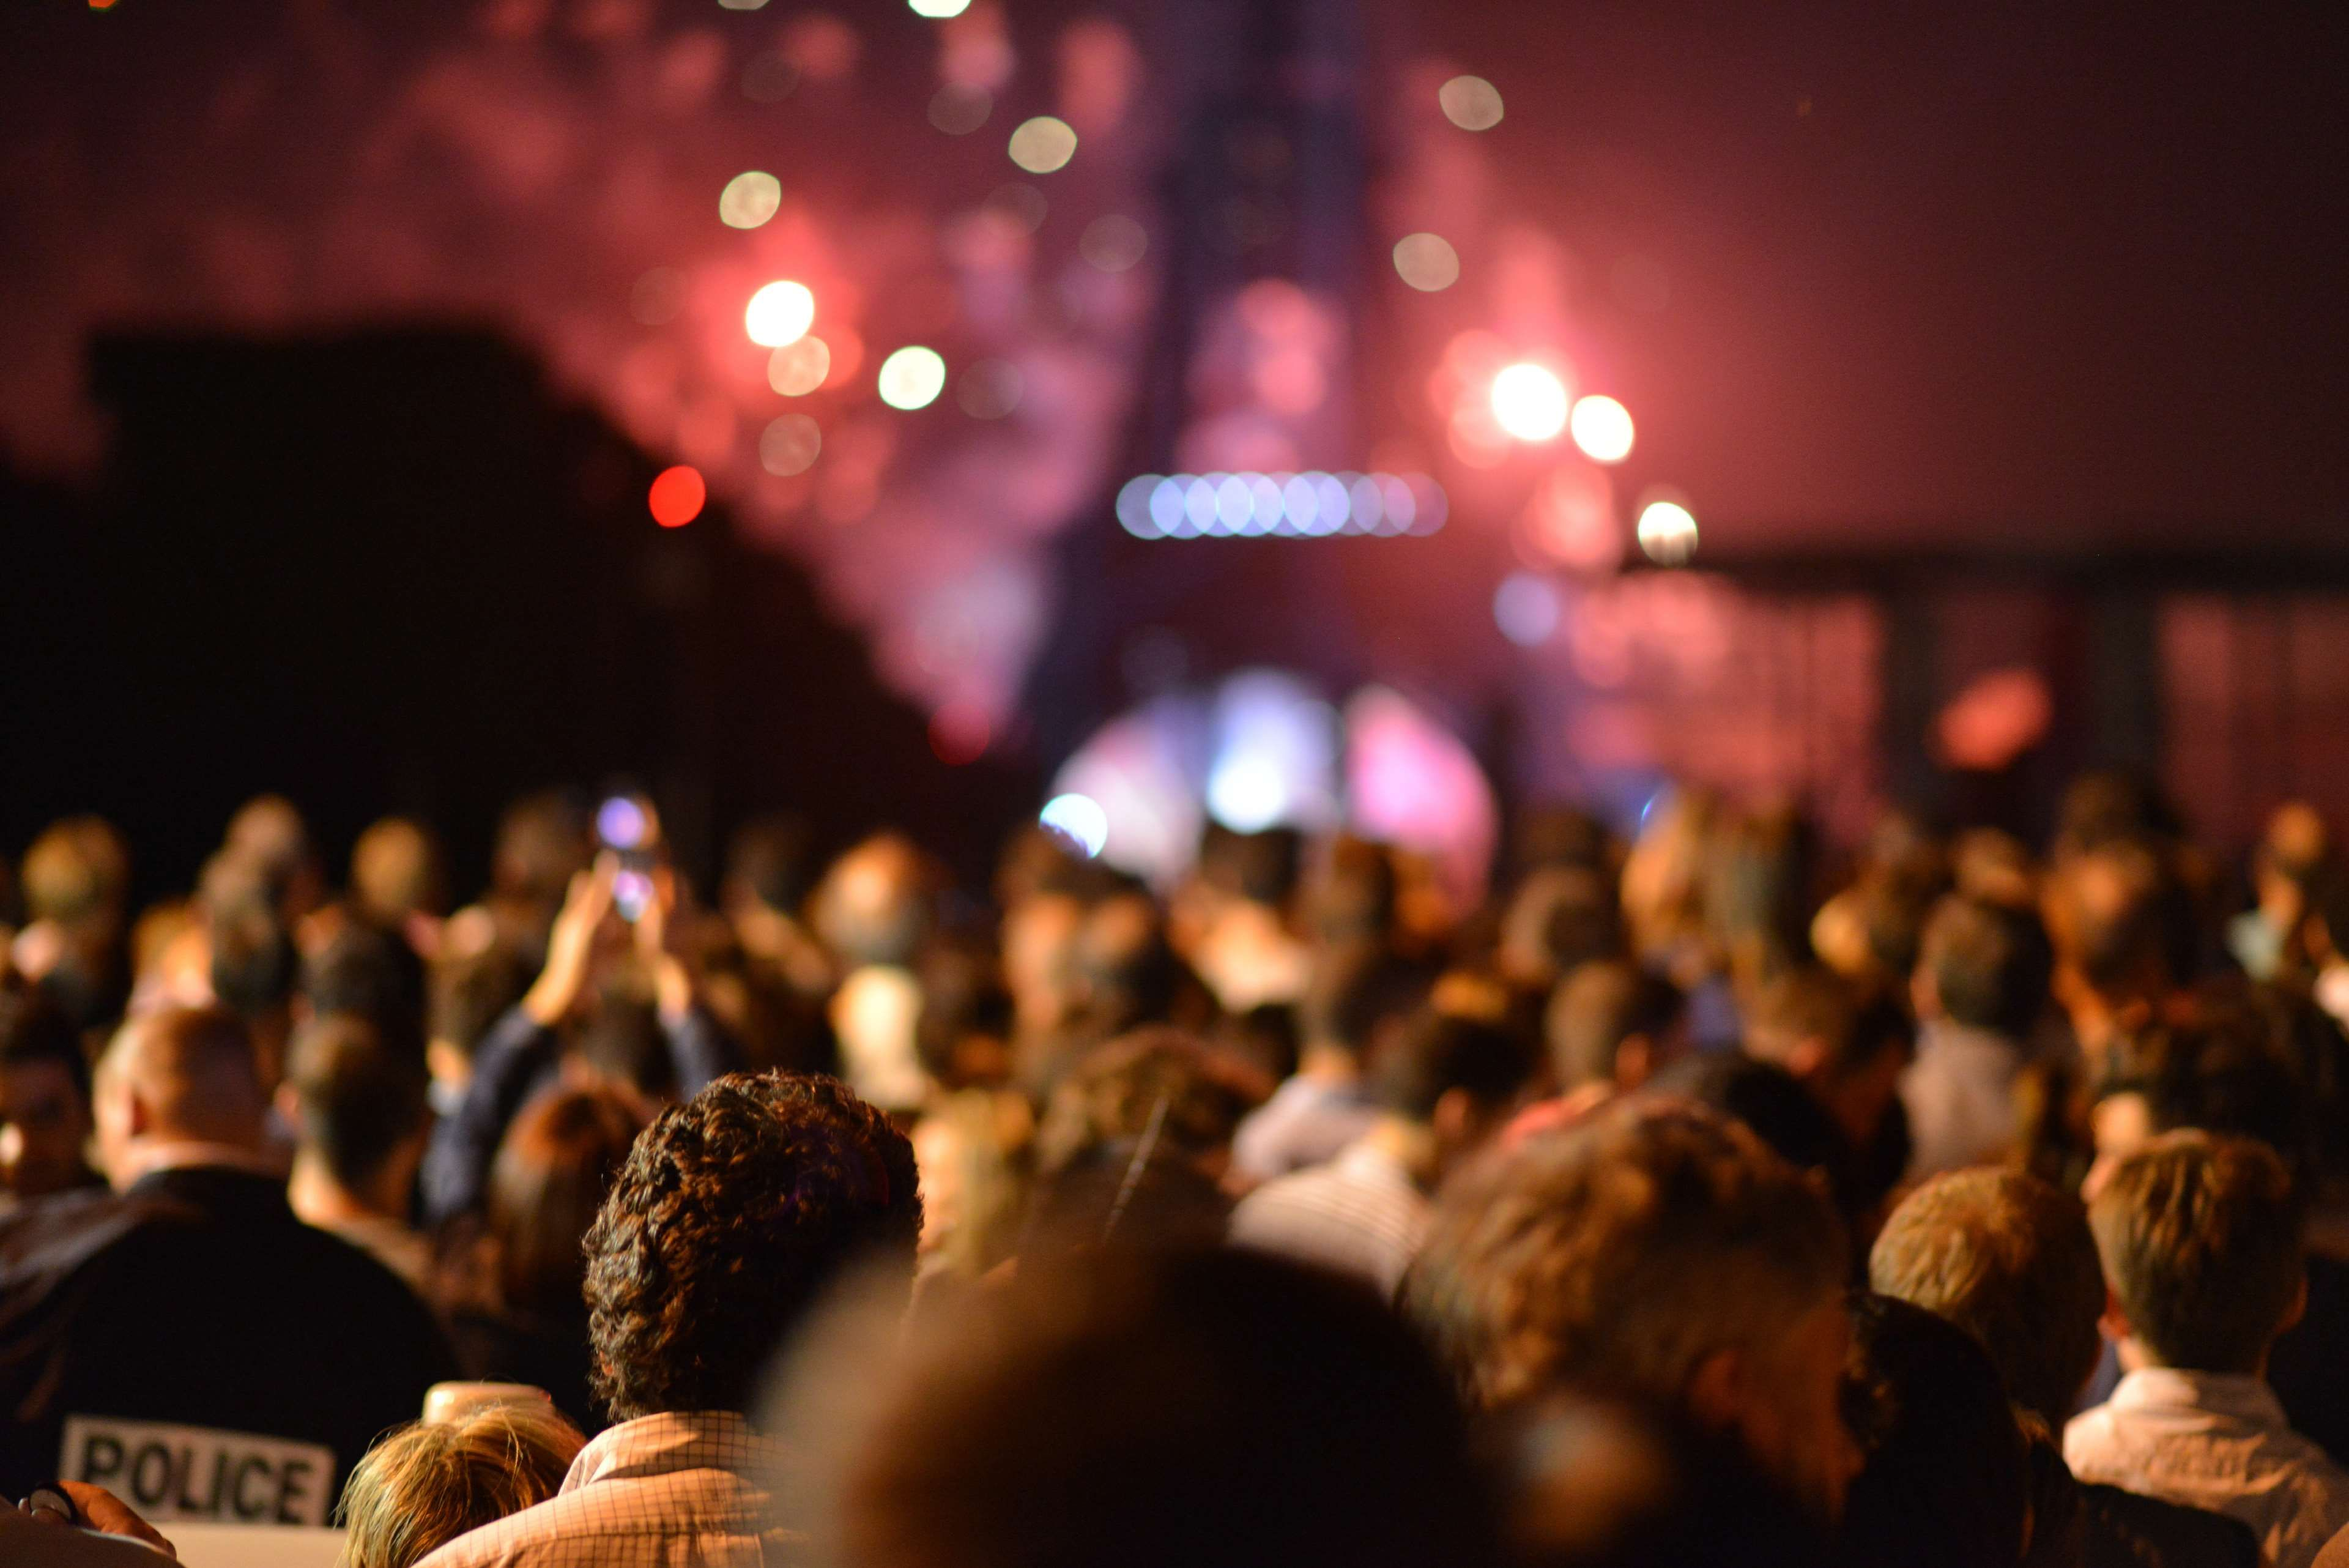 Blur Community Crowd Eiffel Tower Event Festival Hd Wallpaper Lights Night Paris Party Event Management Corporate Events Event Management Software